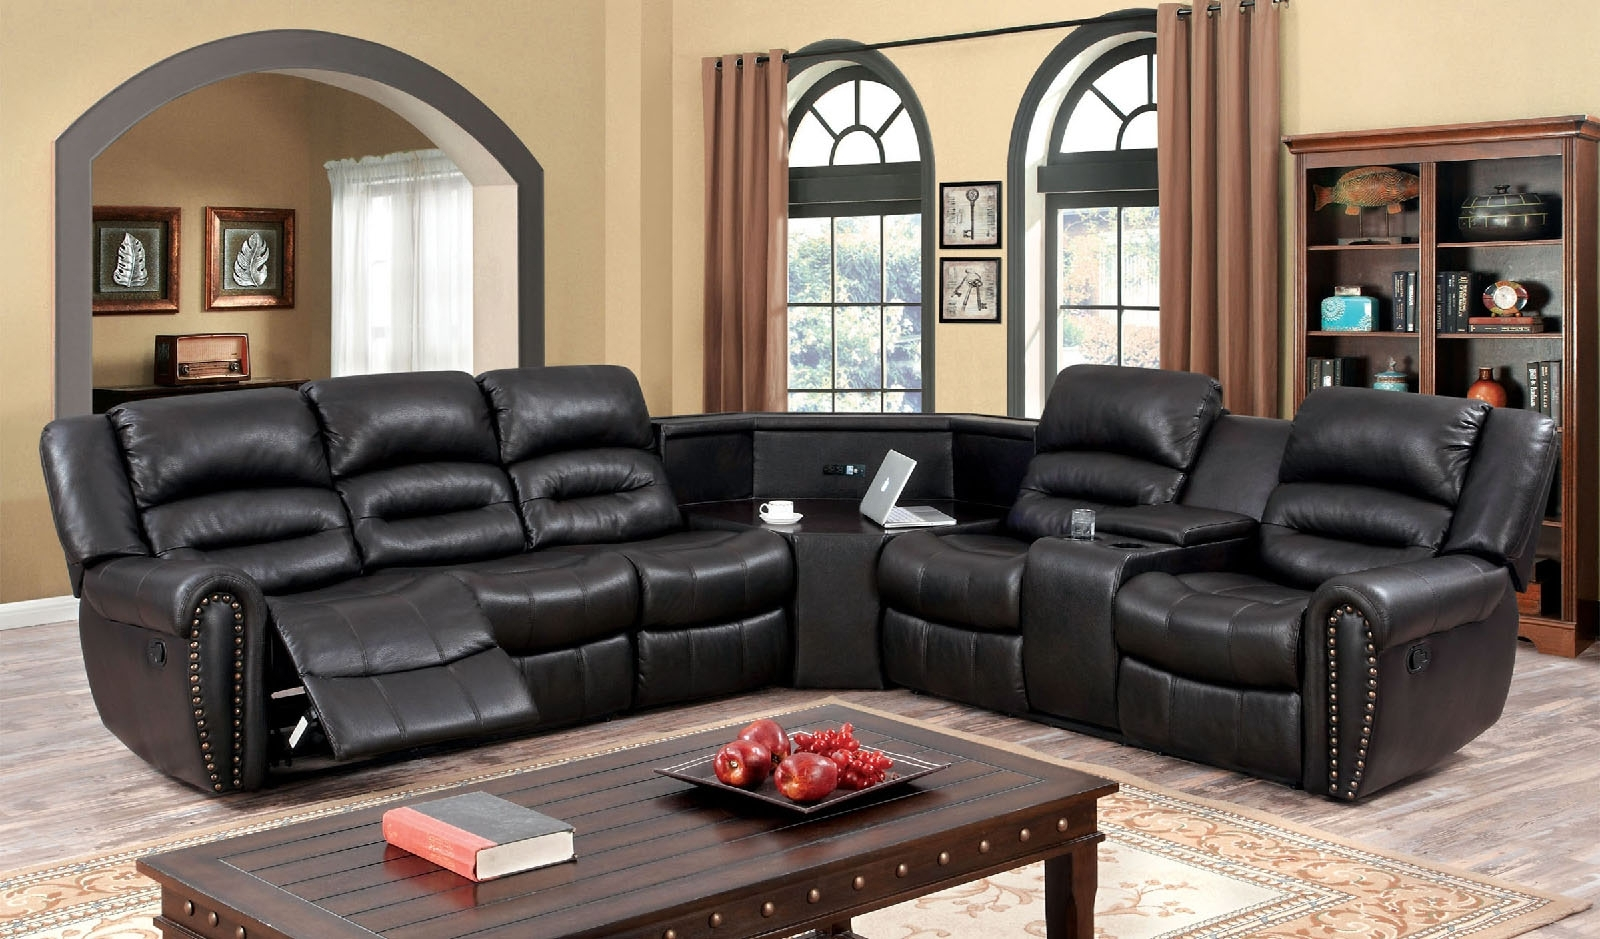 Sectional Sofas With Power Recliners Regarding Widely Used Sofa : Best Power Reclining Sectional Sofas Modern Reclining (View 15 of 20)